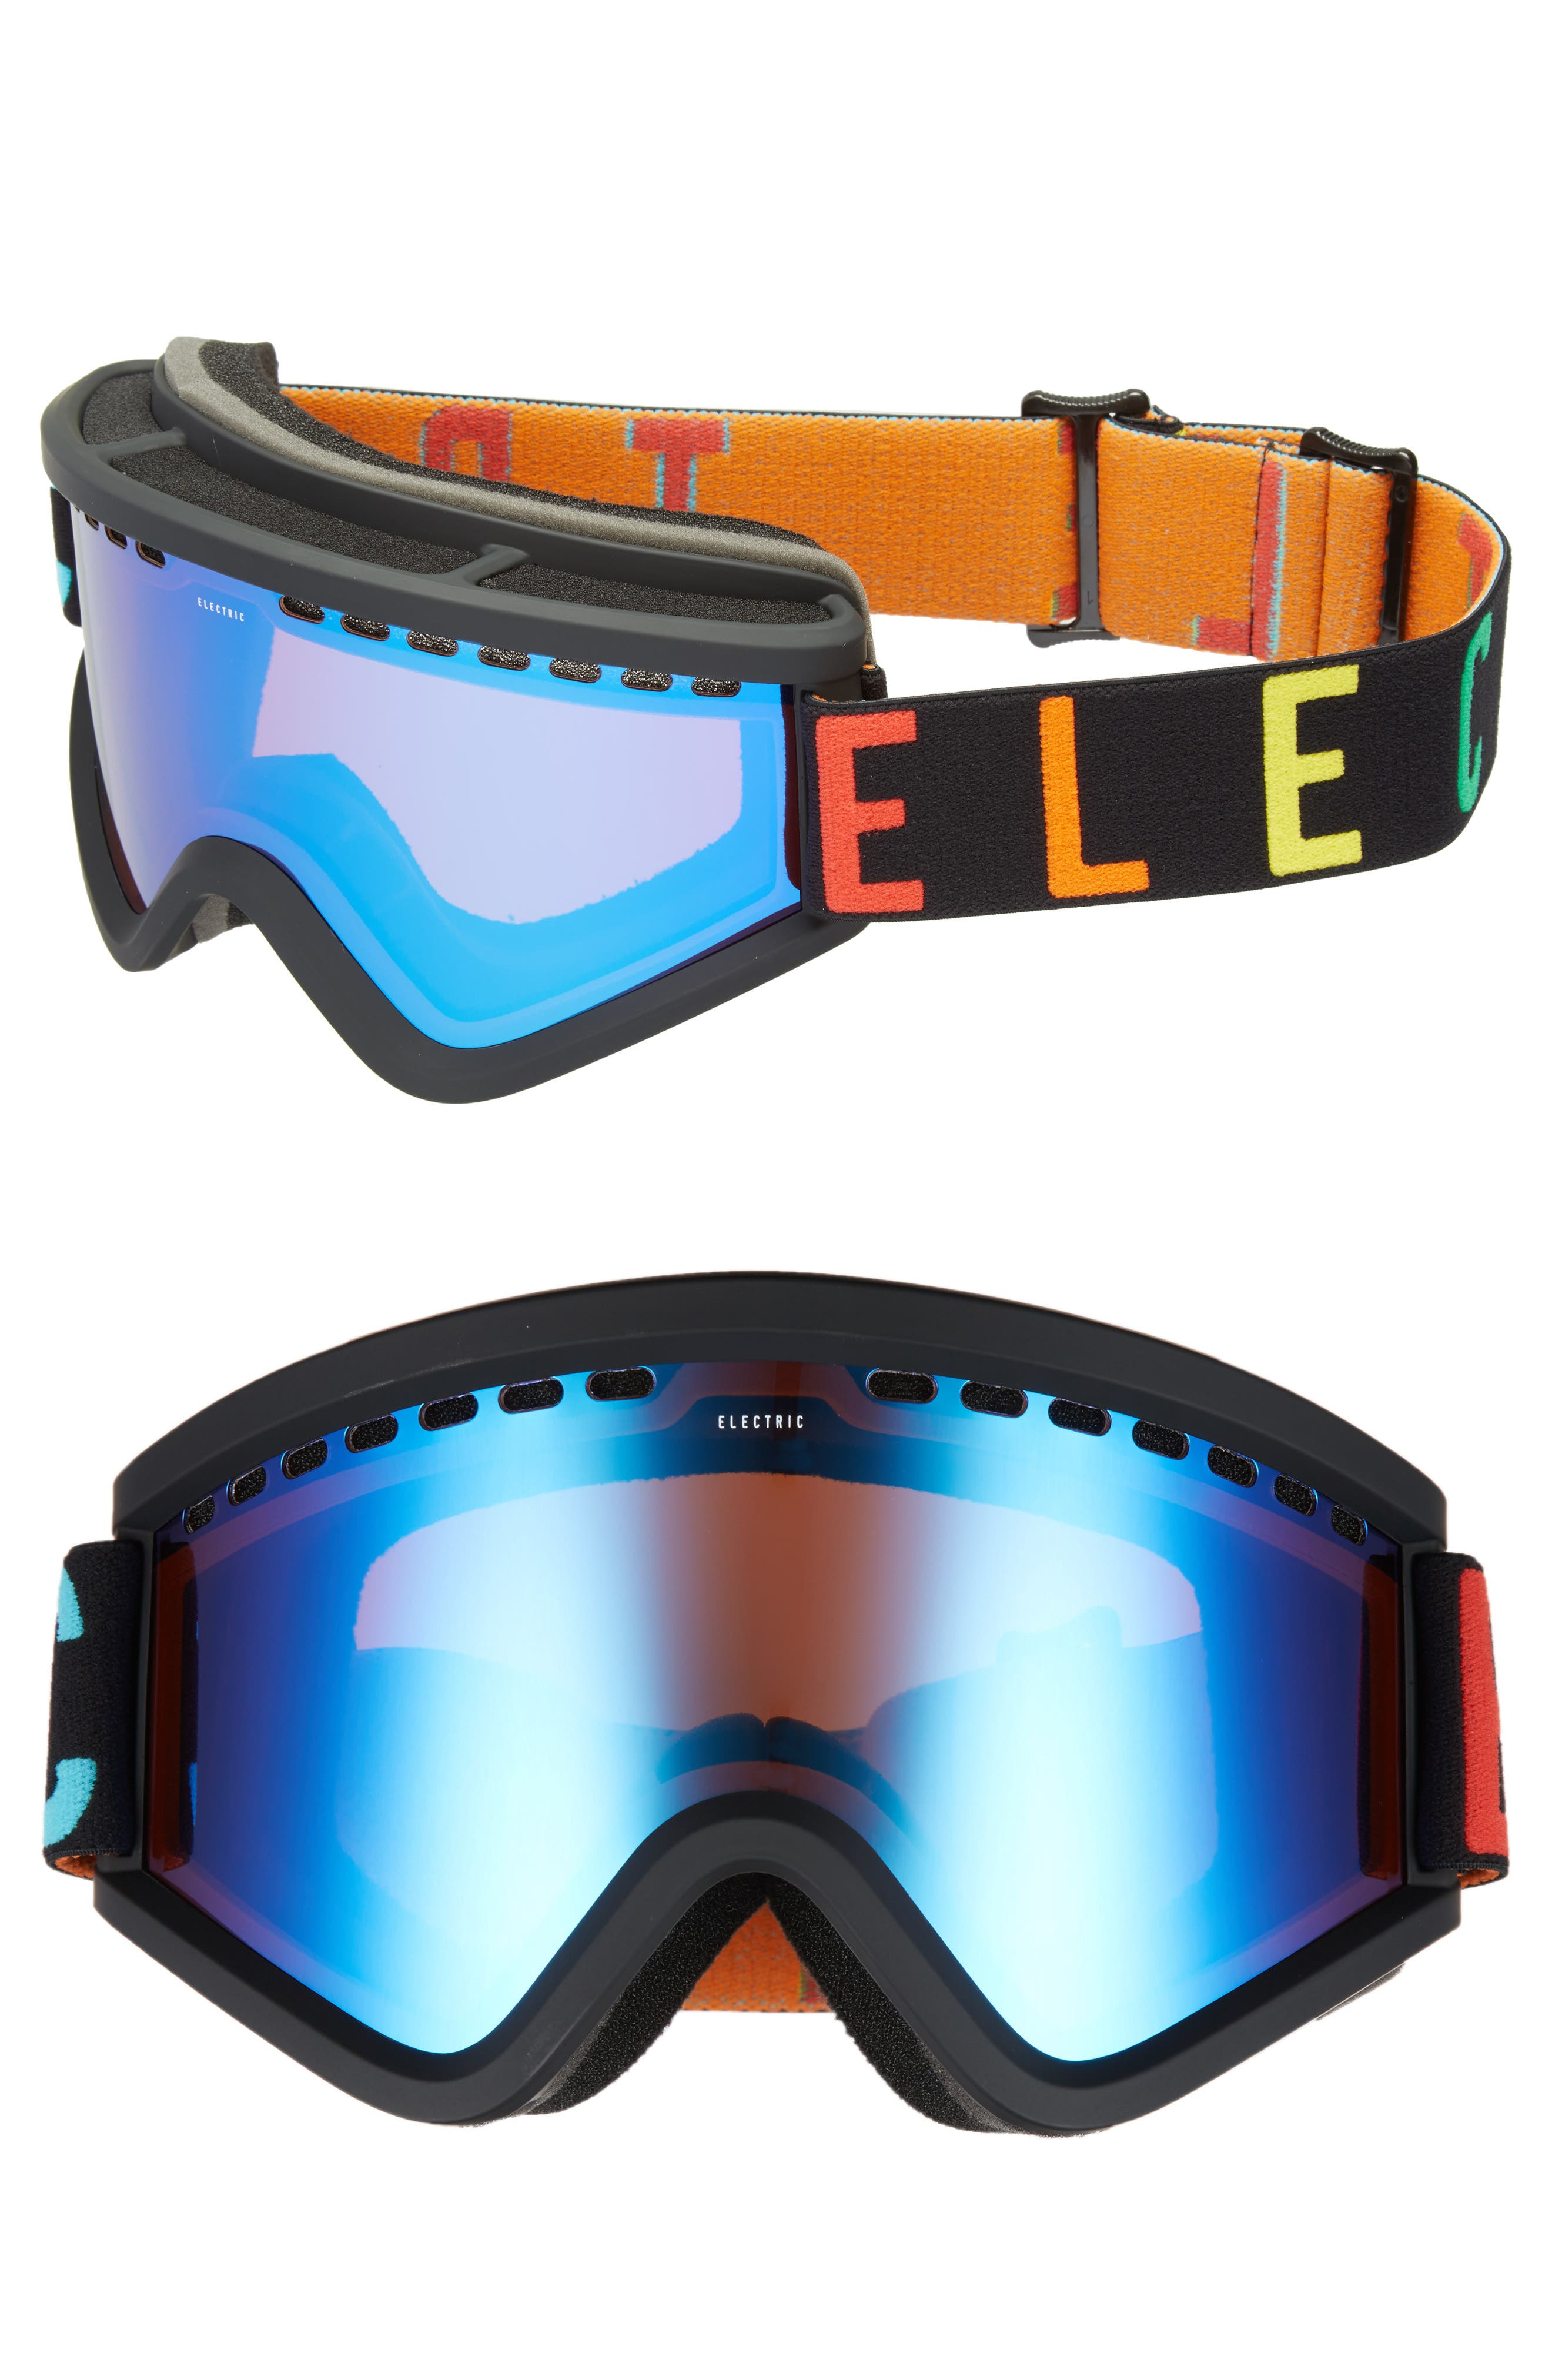 Alternate Image 1 Selected - ELECTRIC EGV Snow Goggles